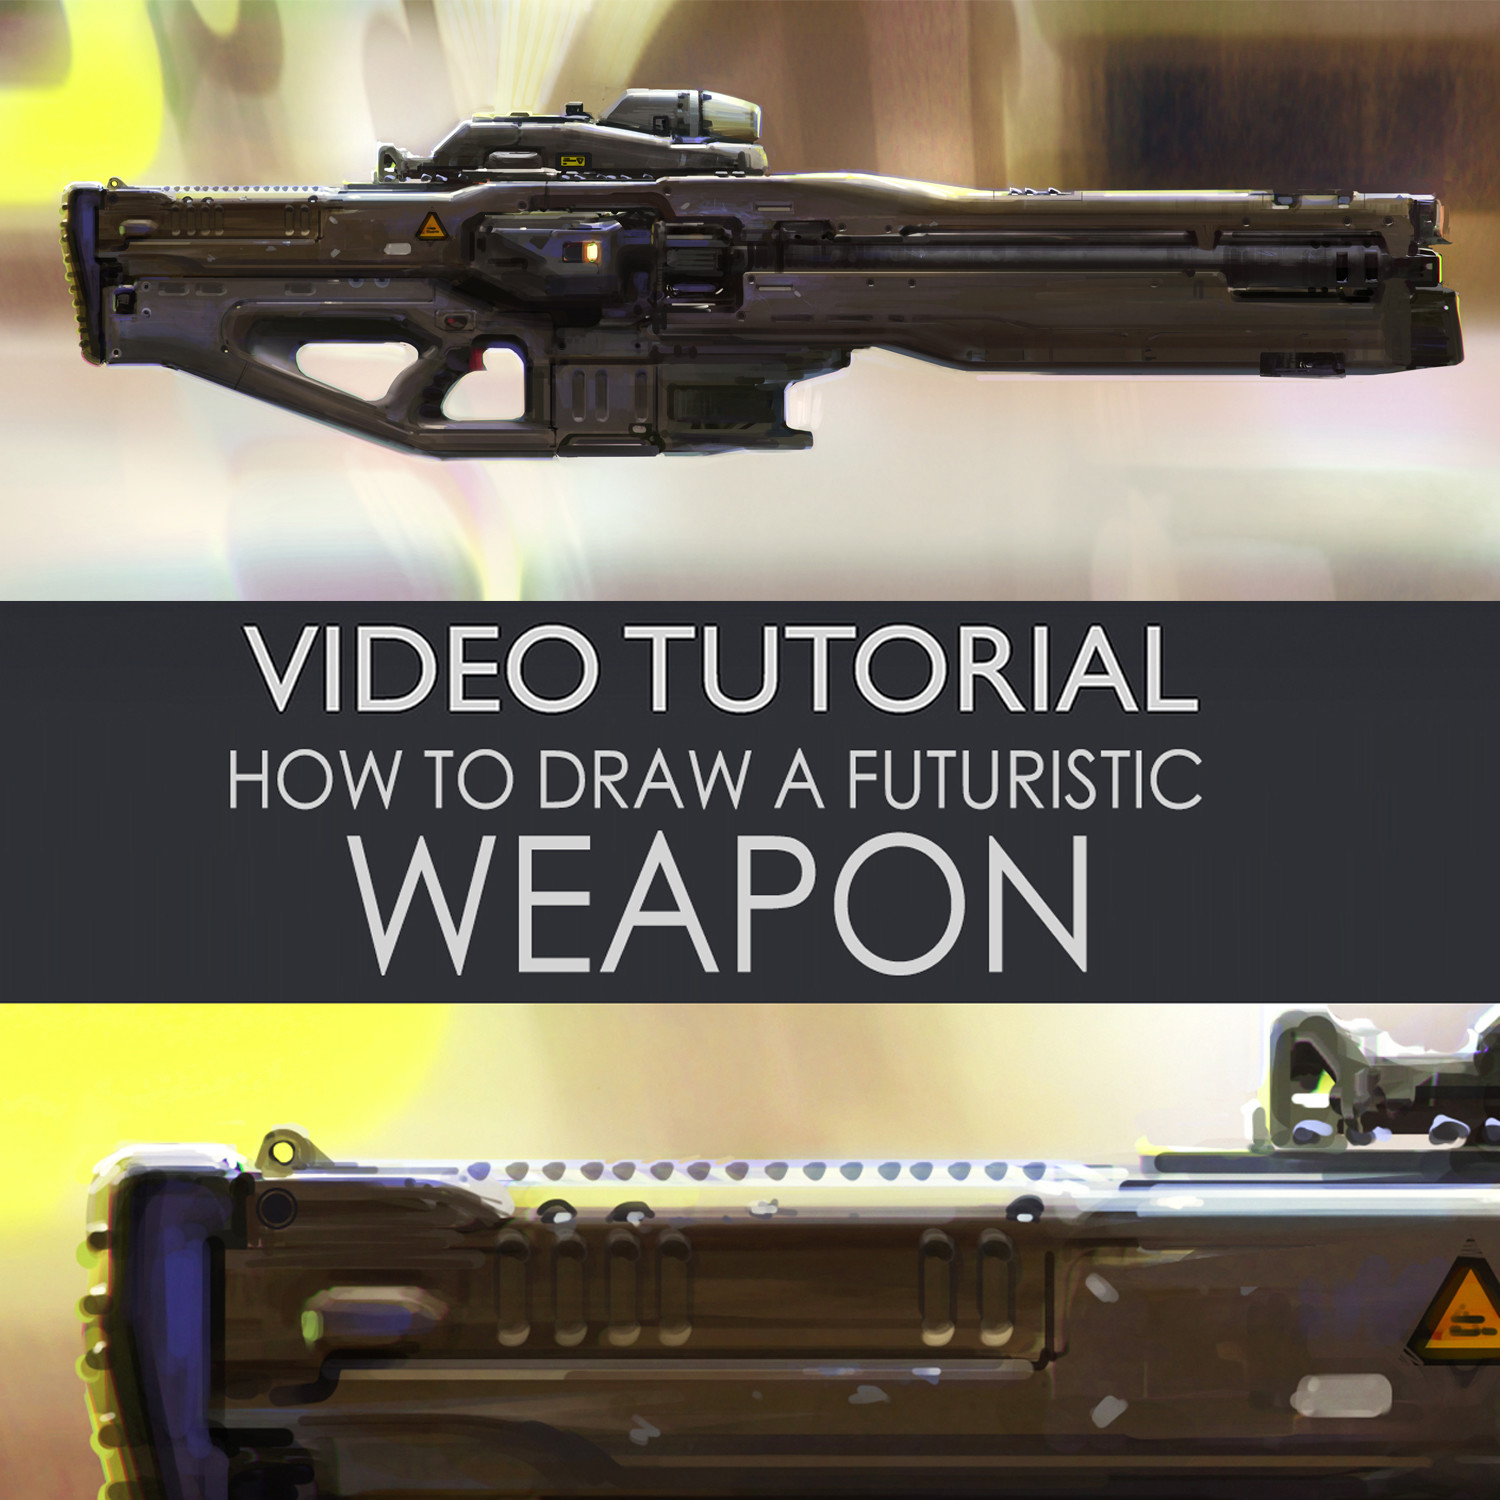 Futuristic weapon tutorial